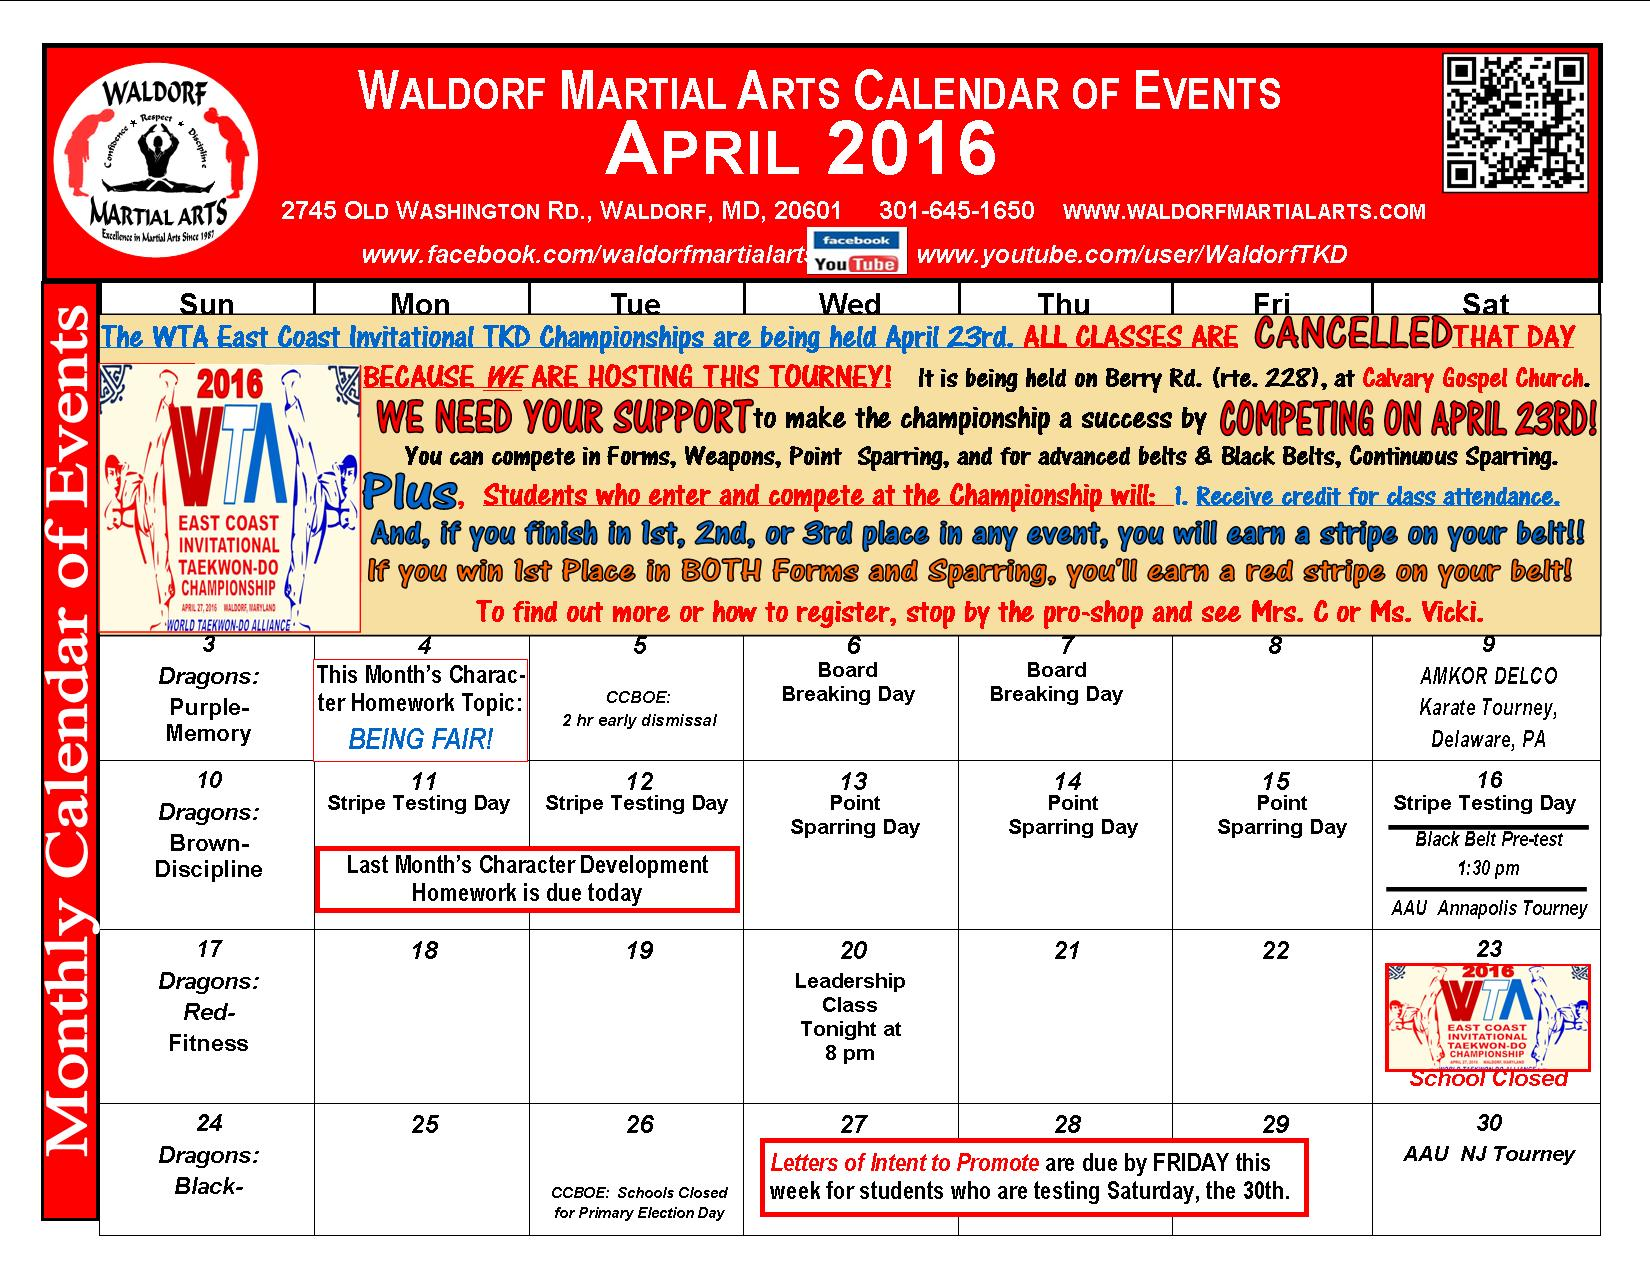 April 2016 Calendar of Events